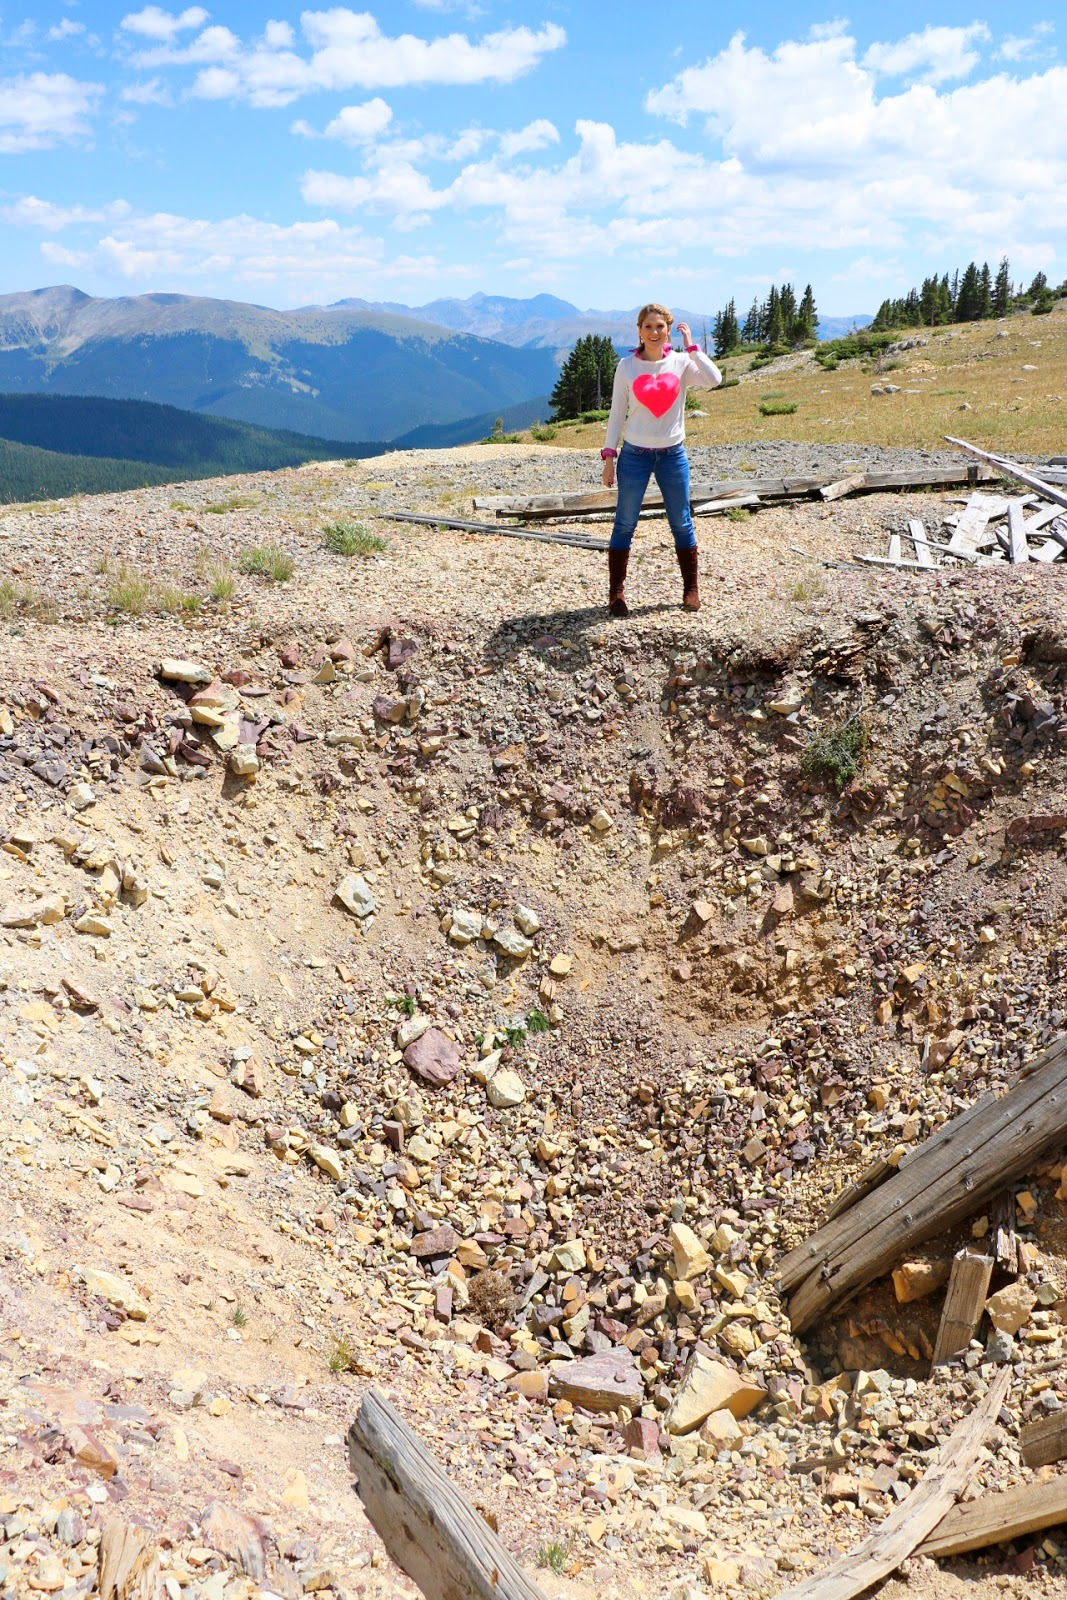 Mines at the top of Fairview Peak, Colorado